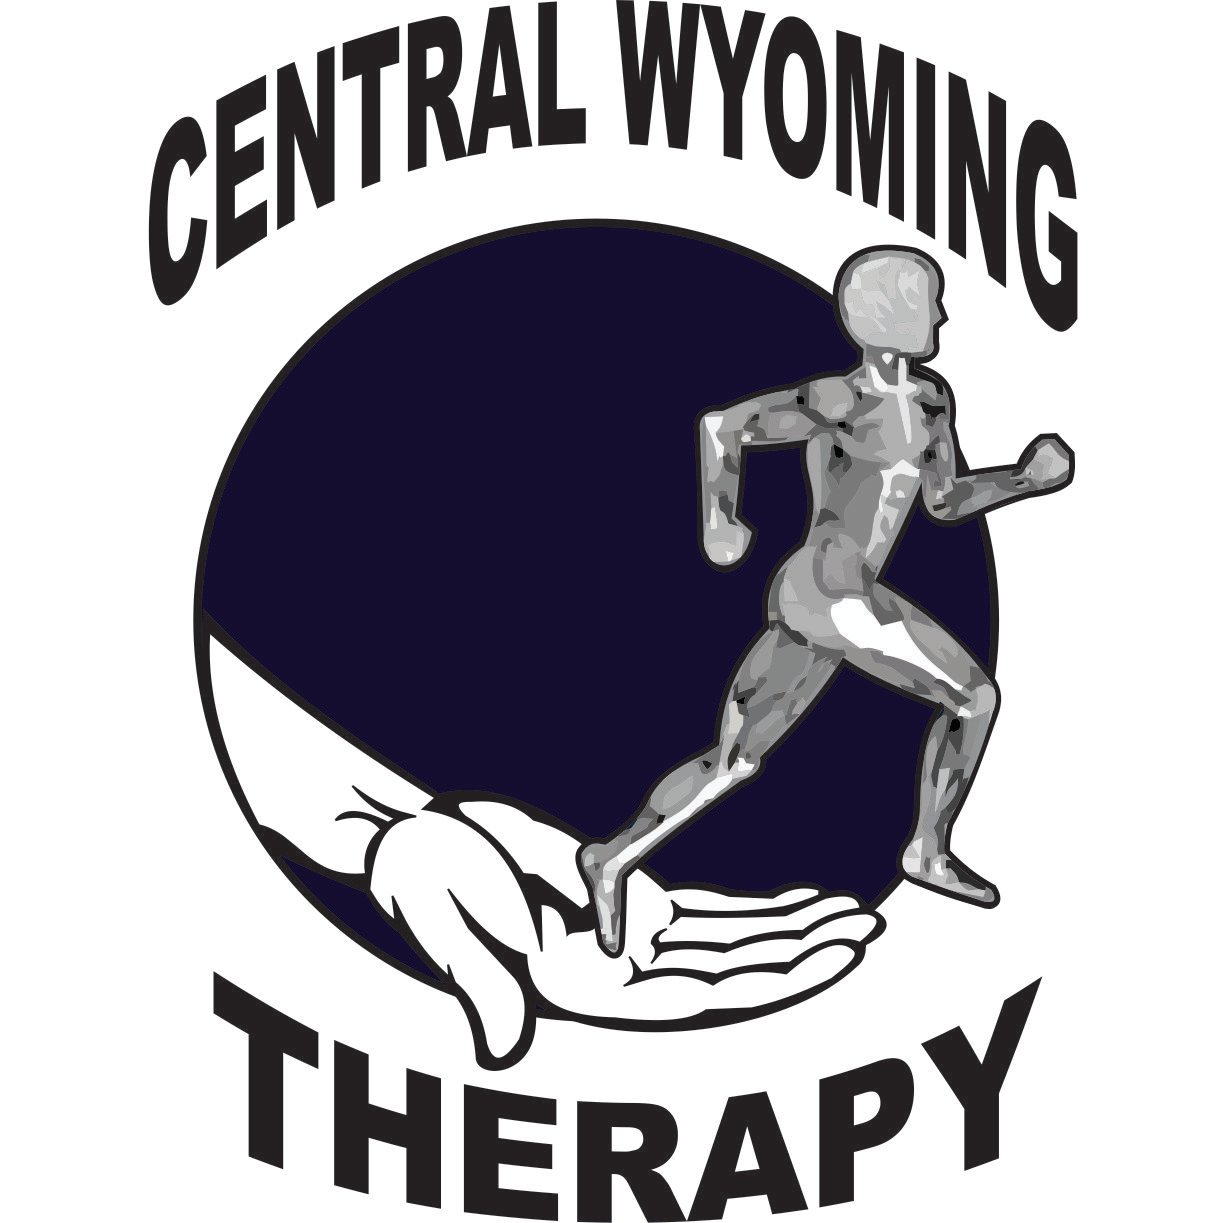 Central Wyoming Therapy image 0